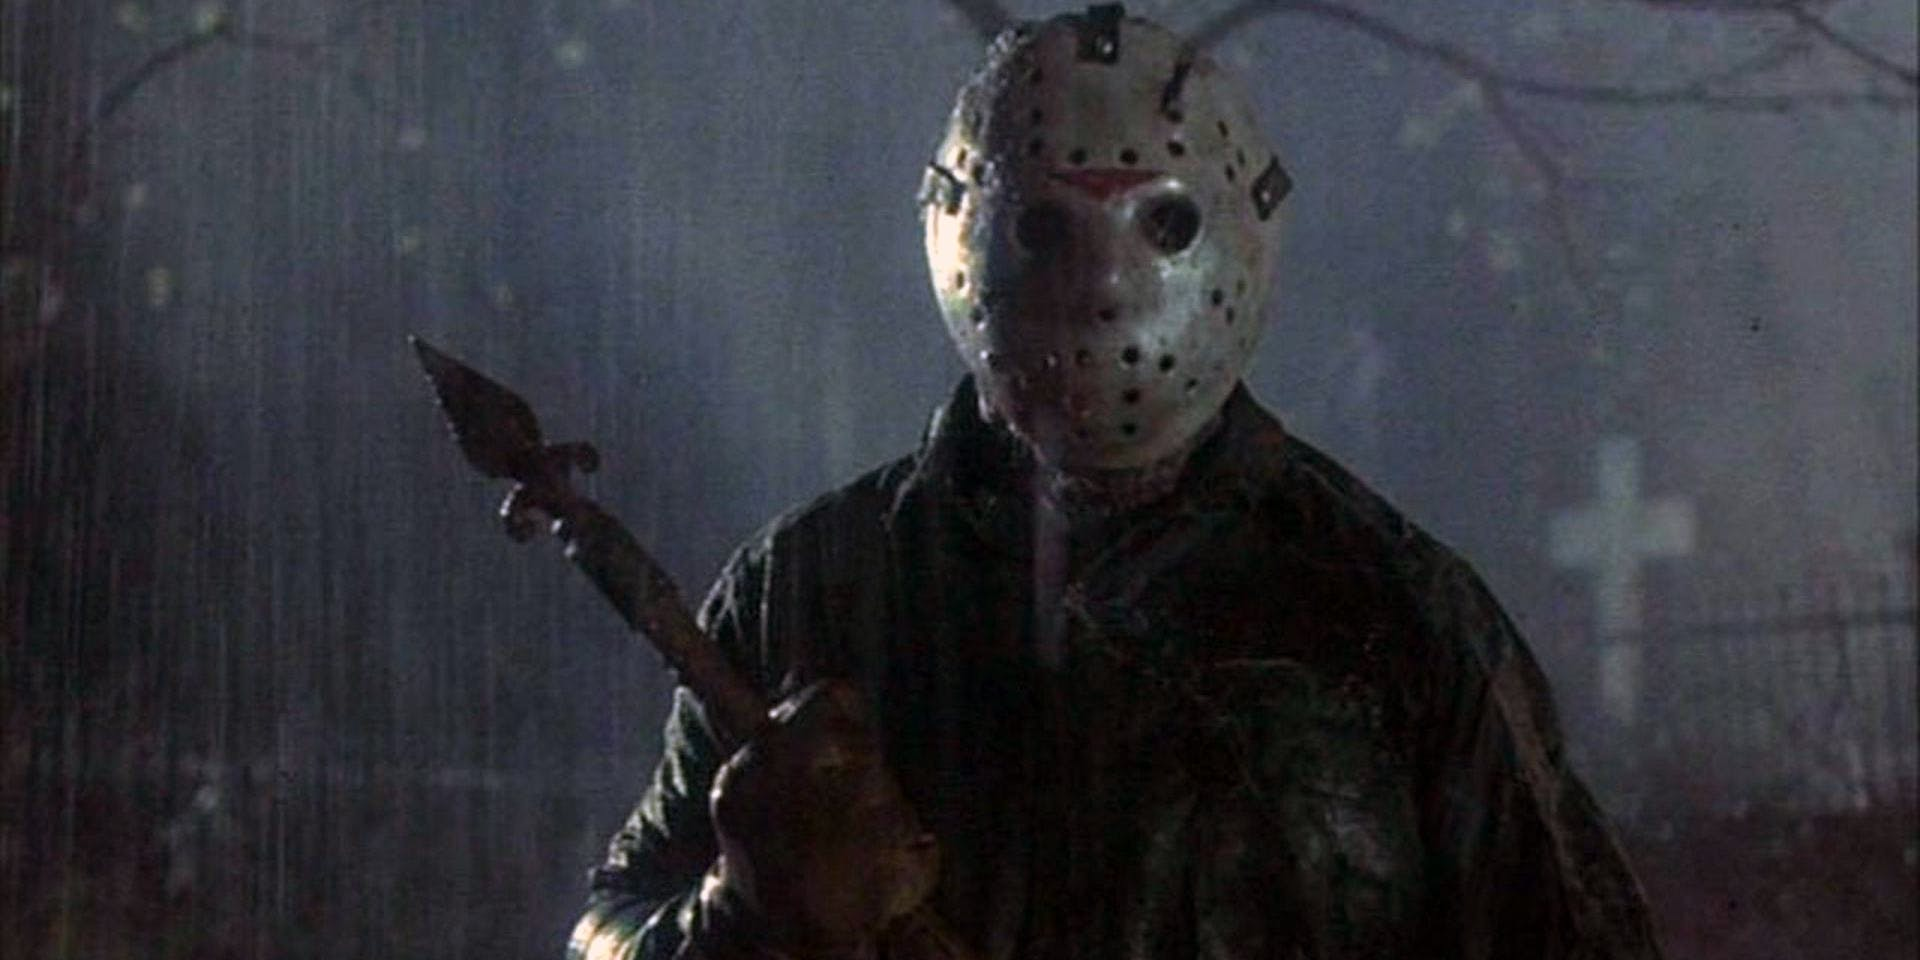 Jason-Voorhees-in-Friday-the-13th-Part-6